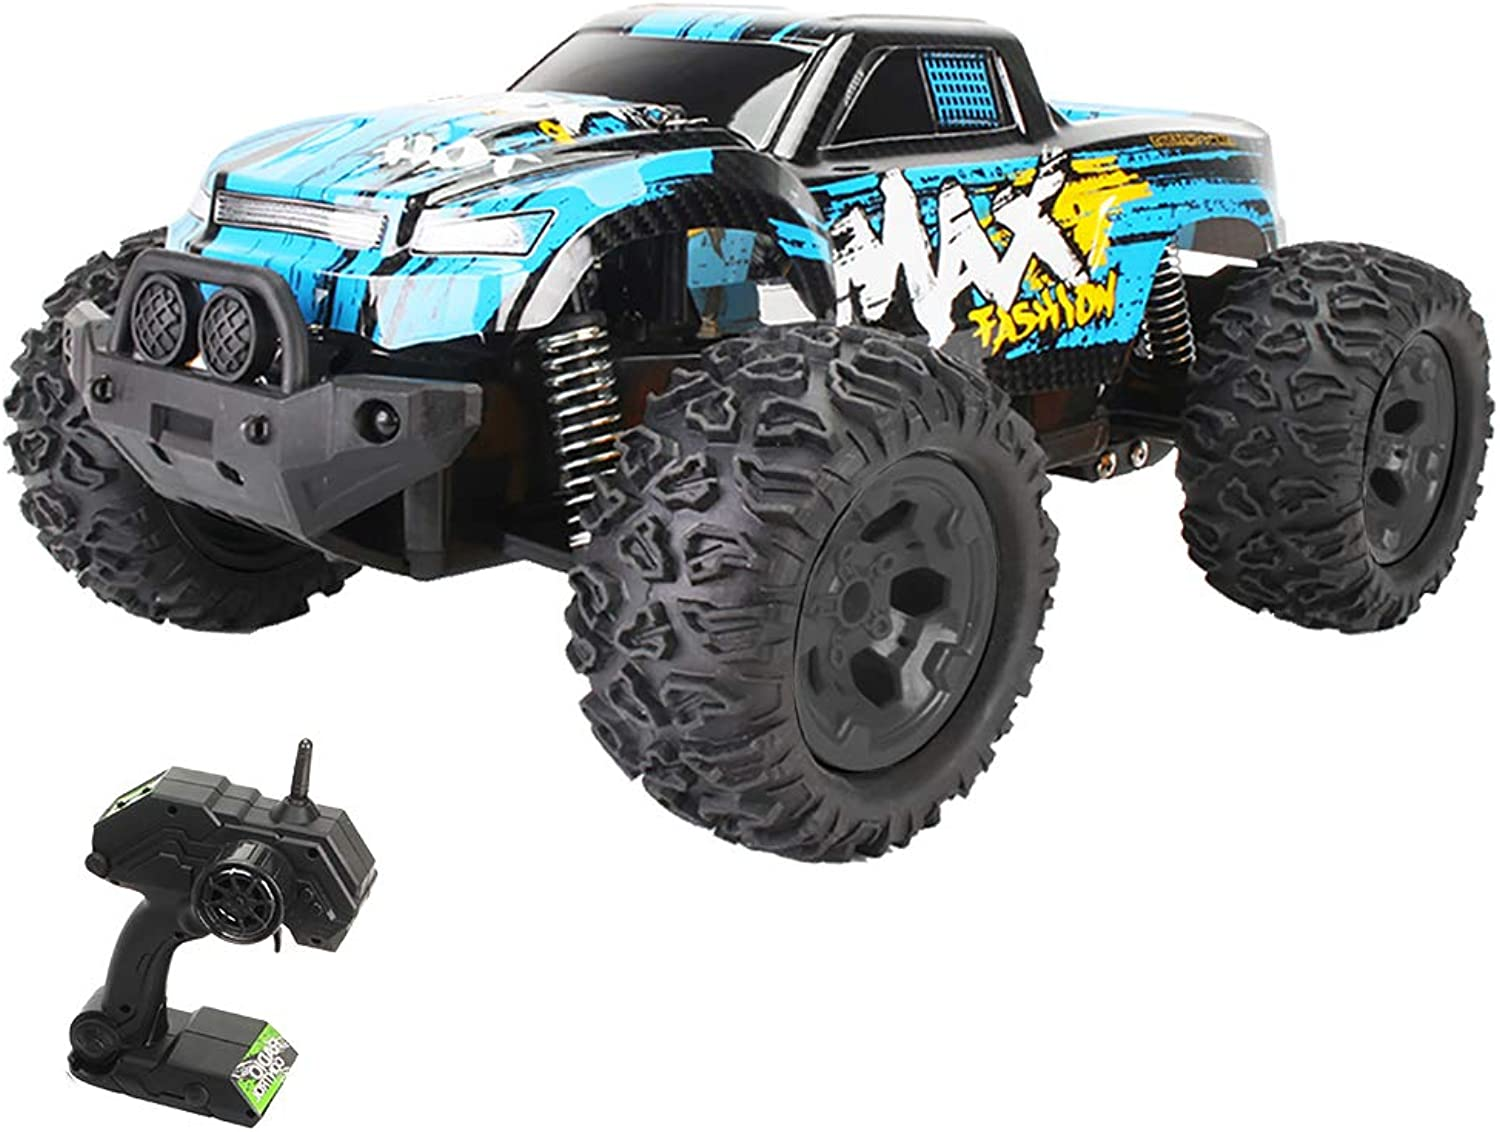 Goolsky KYAMRC 1212B 2.4G 1 12 RC OffRoad Car Crosscountry Vehicle RC Toy Gift for Kids Outdoor Play